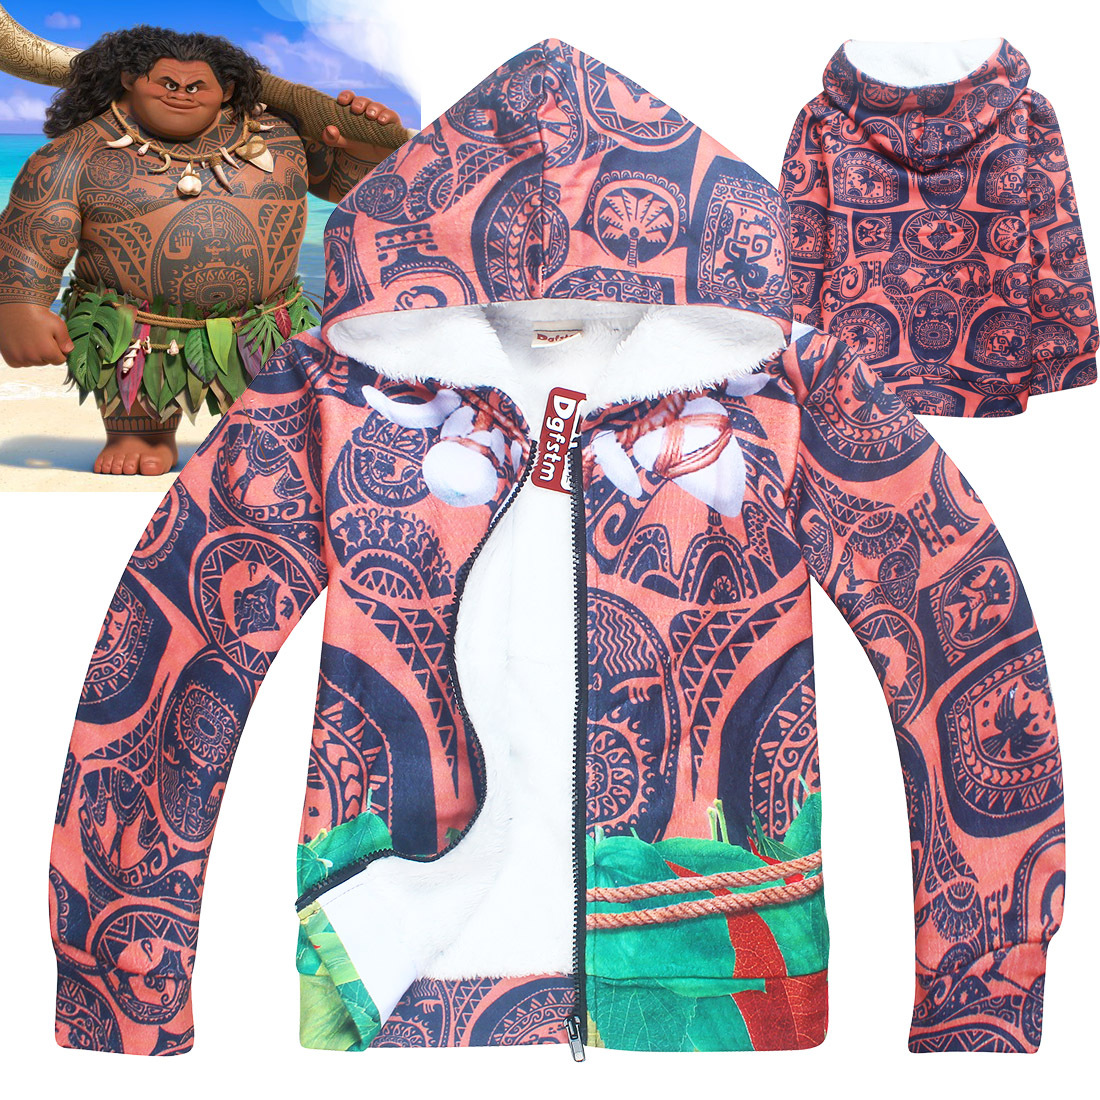 New Moana Maui Sweatshirts Hoodies Coats Kid Boys Girls Wool winter Thicker Coat Children Vaiana Thick Zipper Hoodie Shirts